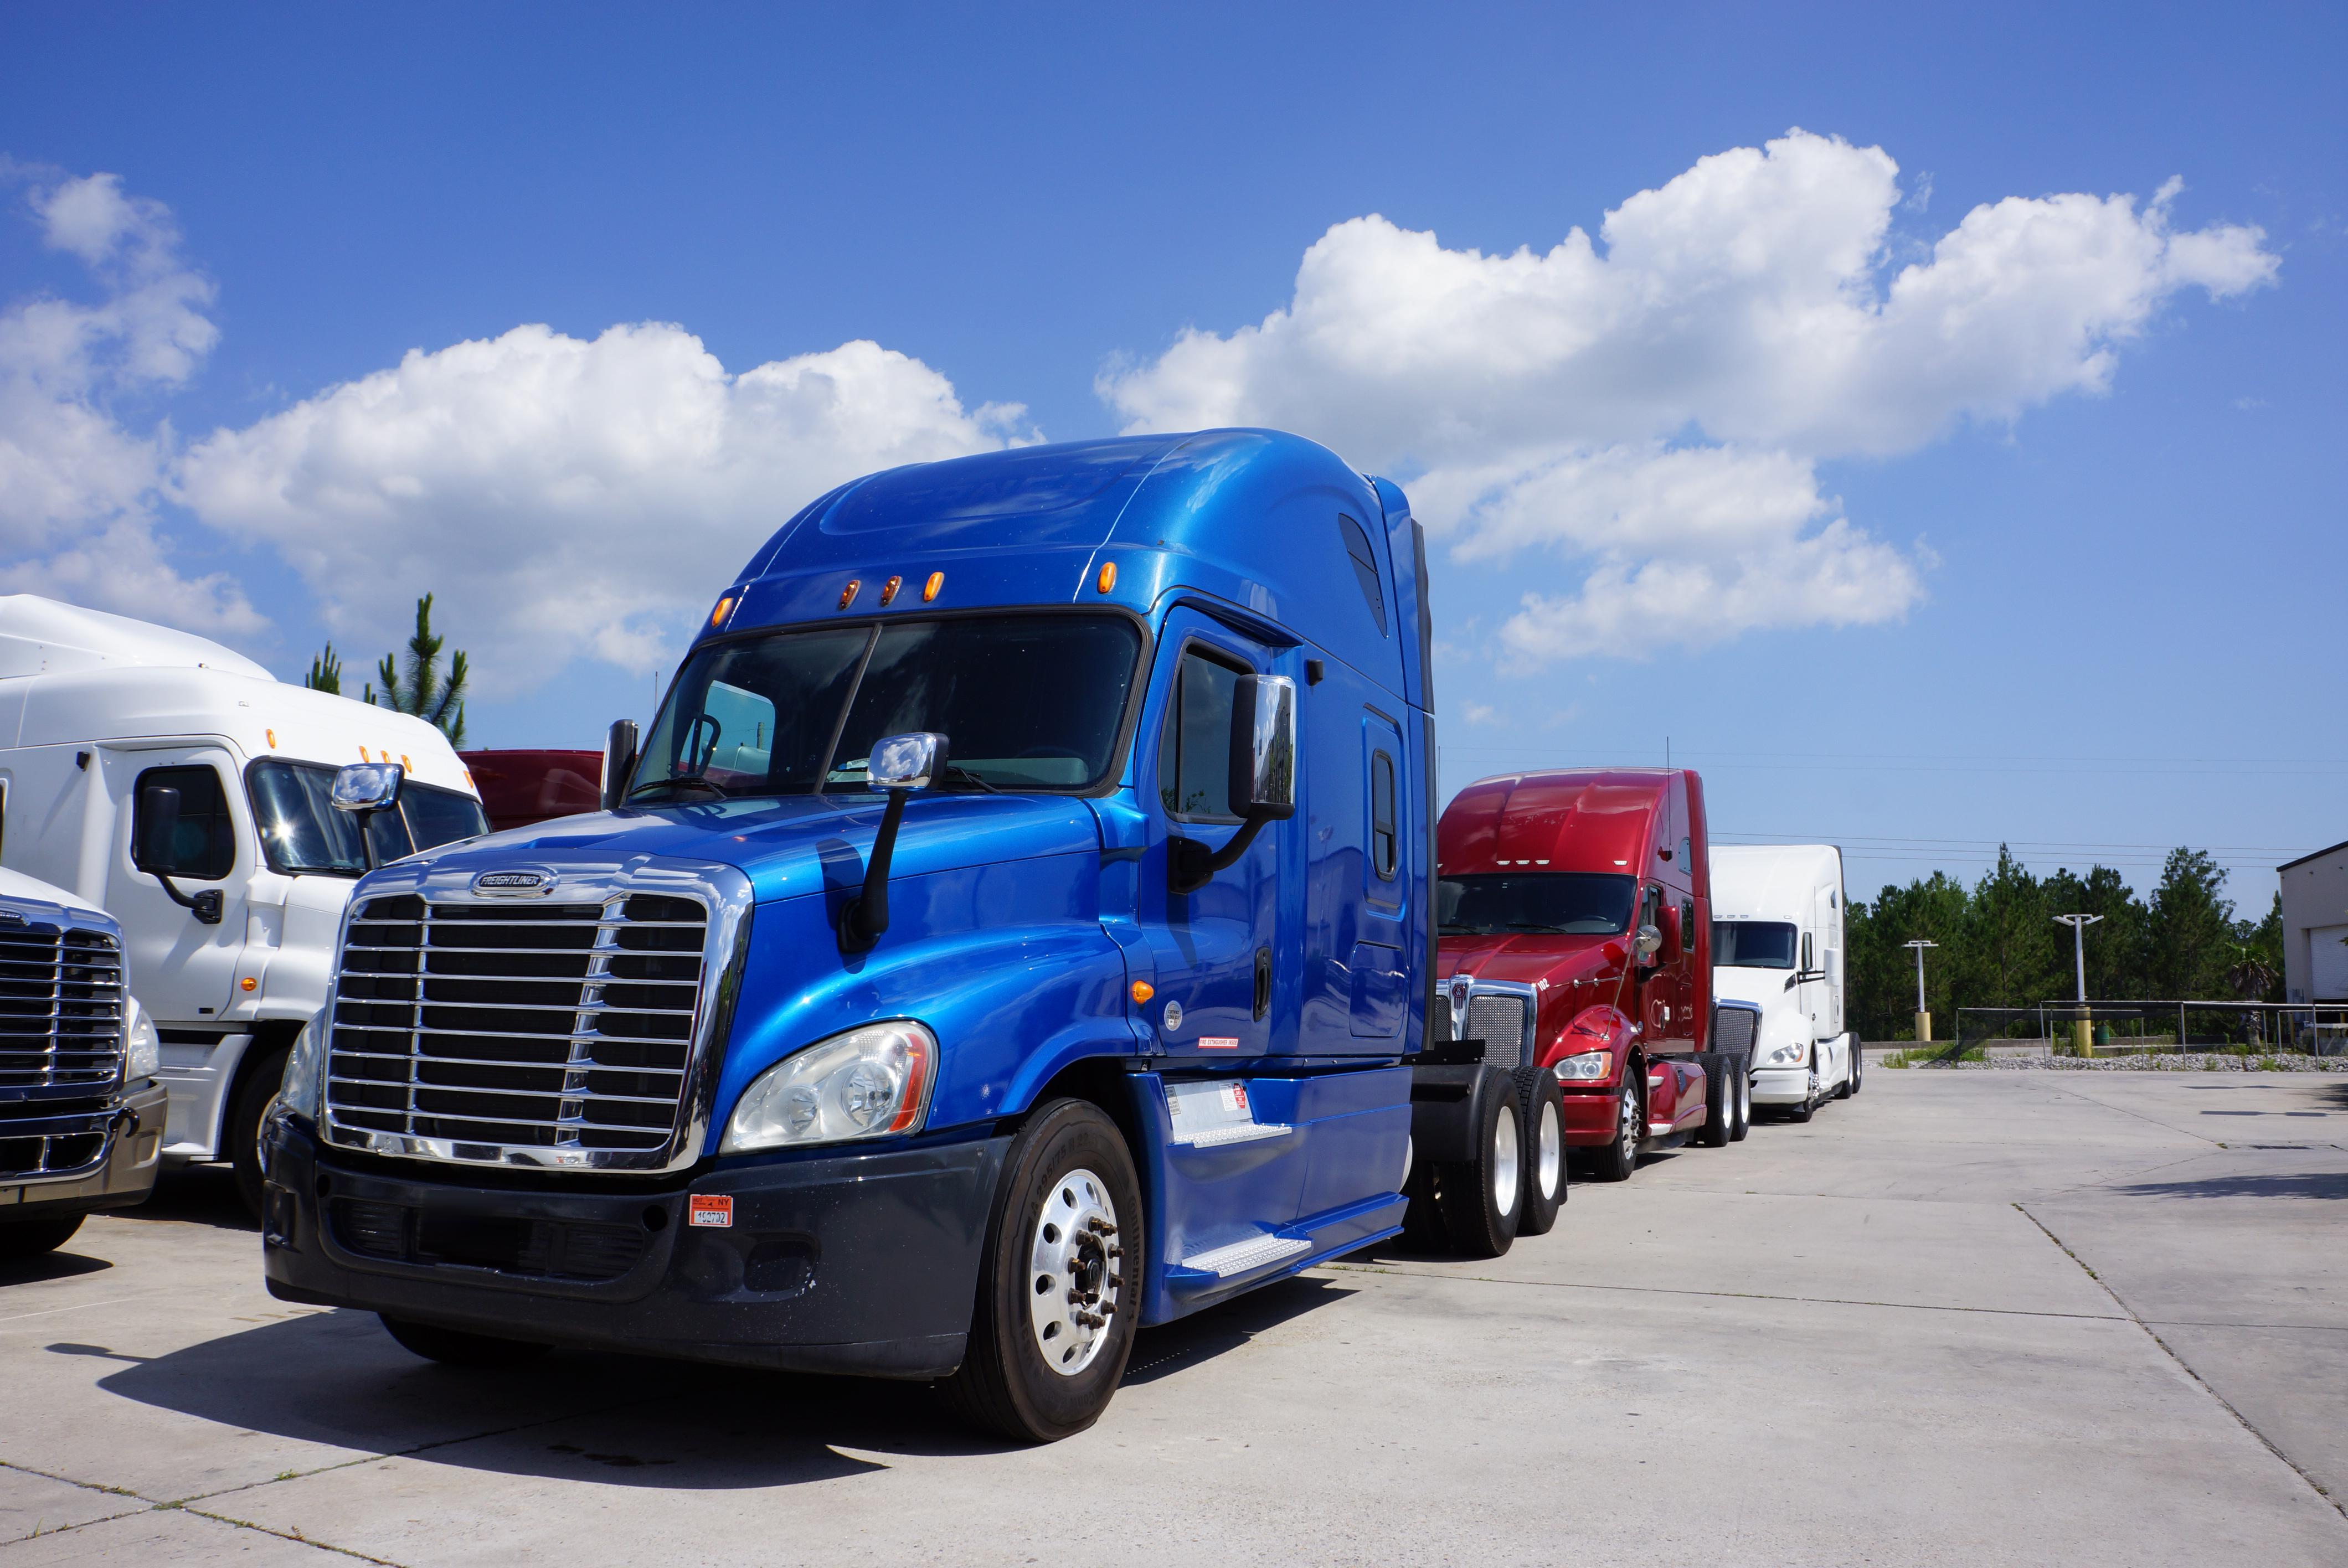 USED 2013 FREIGHTLINER CASCADIA SLEEPER TRUCK #123604